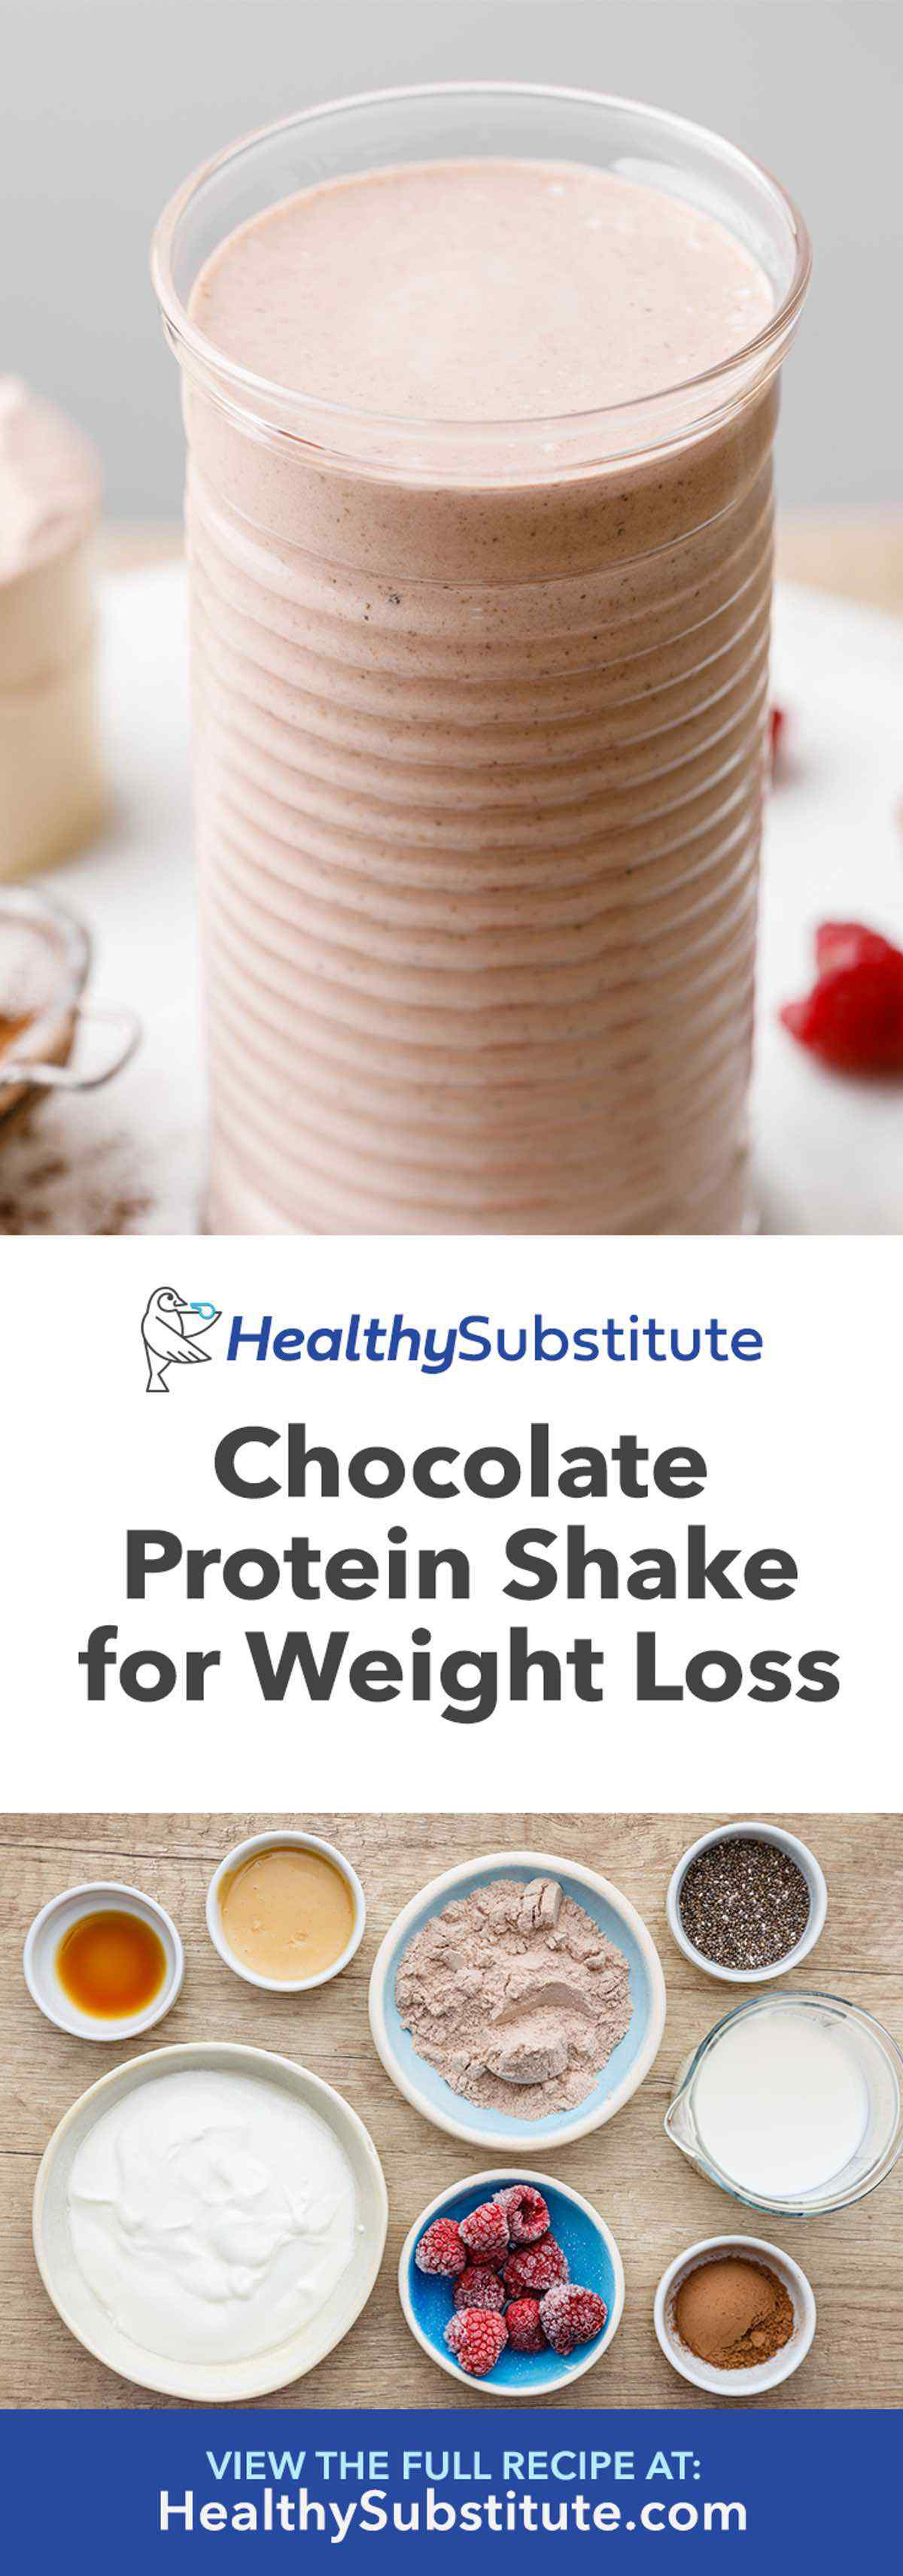 Protein Powder Smoothie Recipes For Weight Loss Image Of Food Recipe